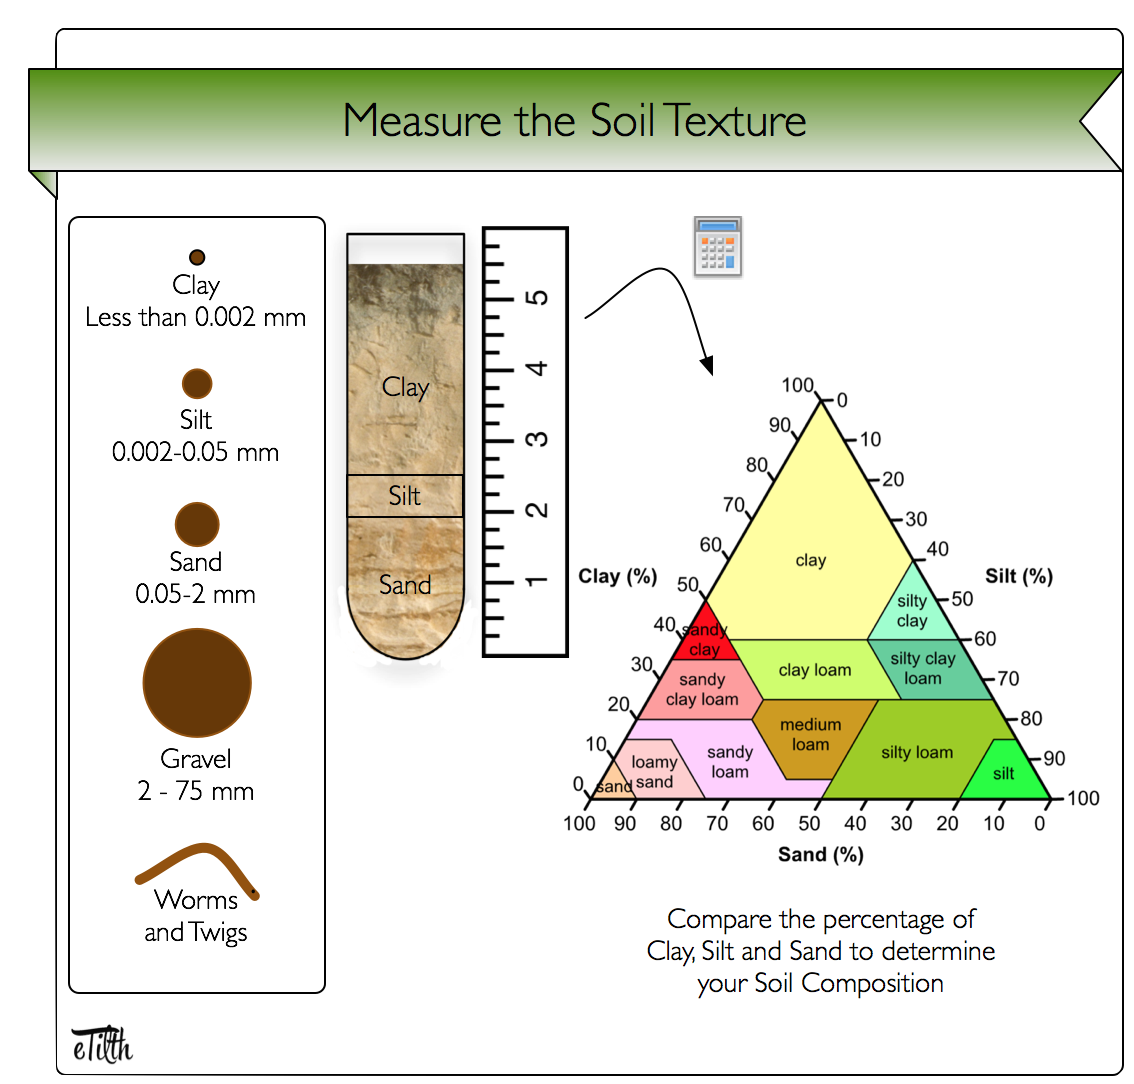 Triangle Shaped Graphic Showing Percent Of Clay Silt And Sand